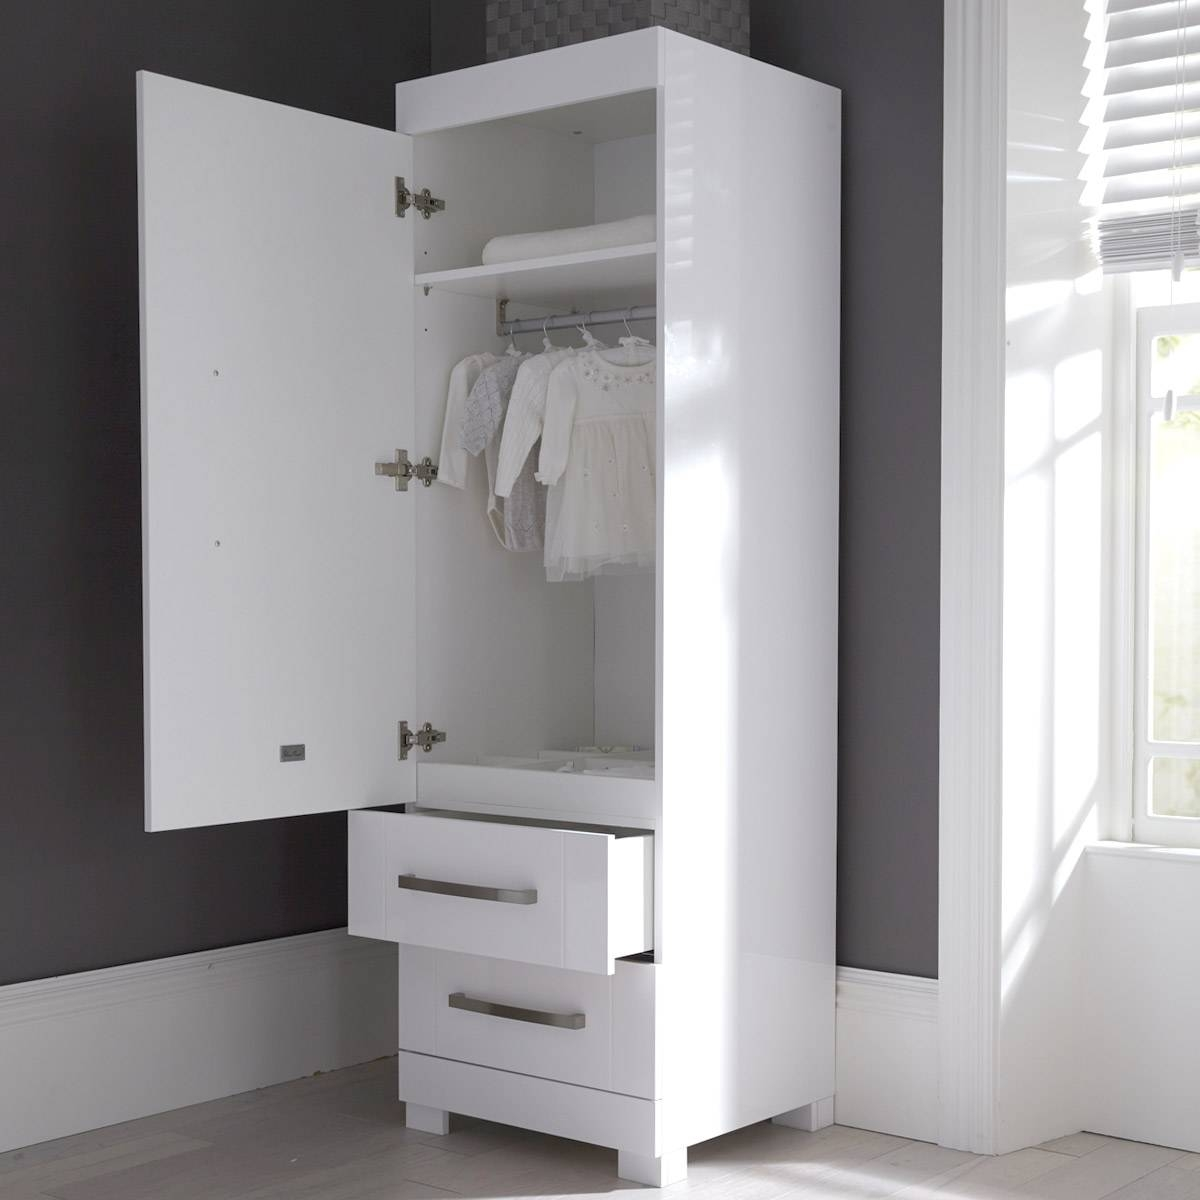 Notting Hill Nursery Single Wardrobe | Silver Cross Uk with regard to Single White Wardrobes With Drawers (Image 6 of 15)